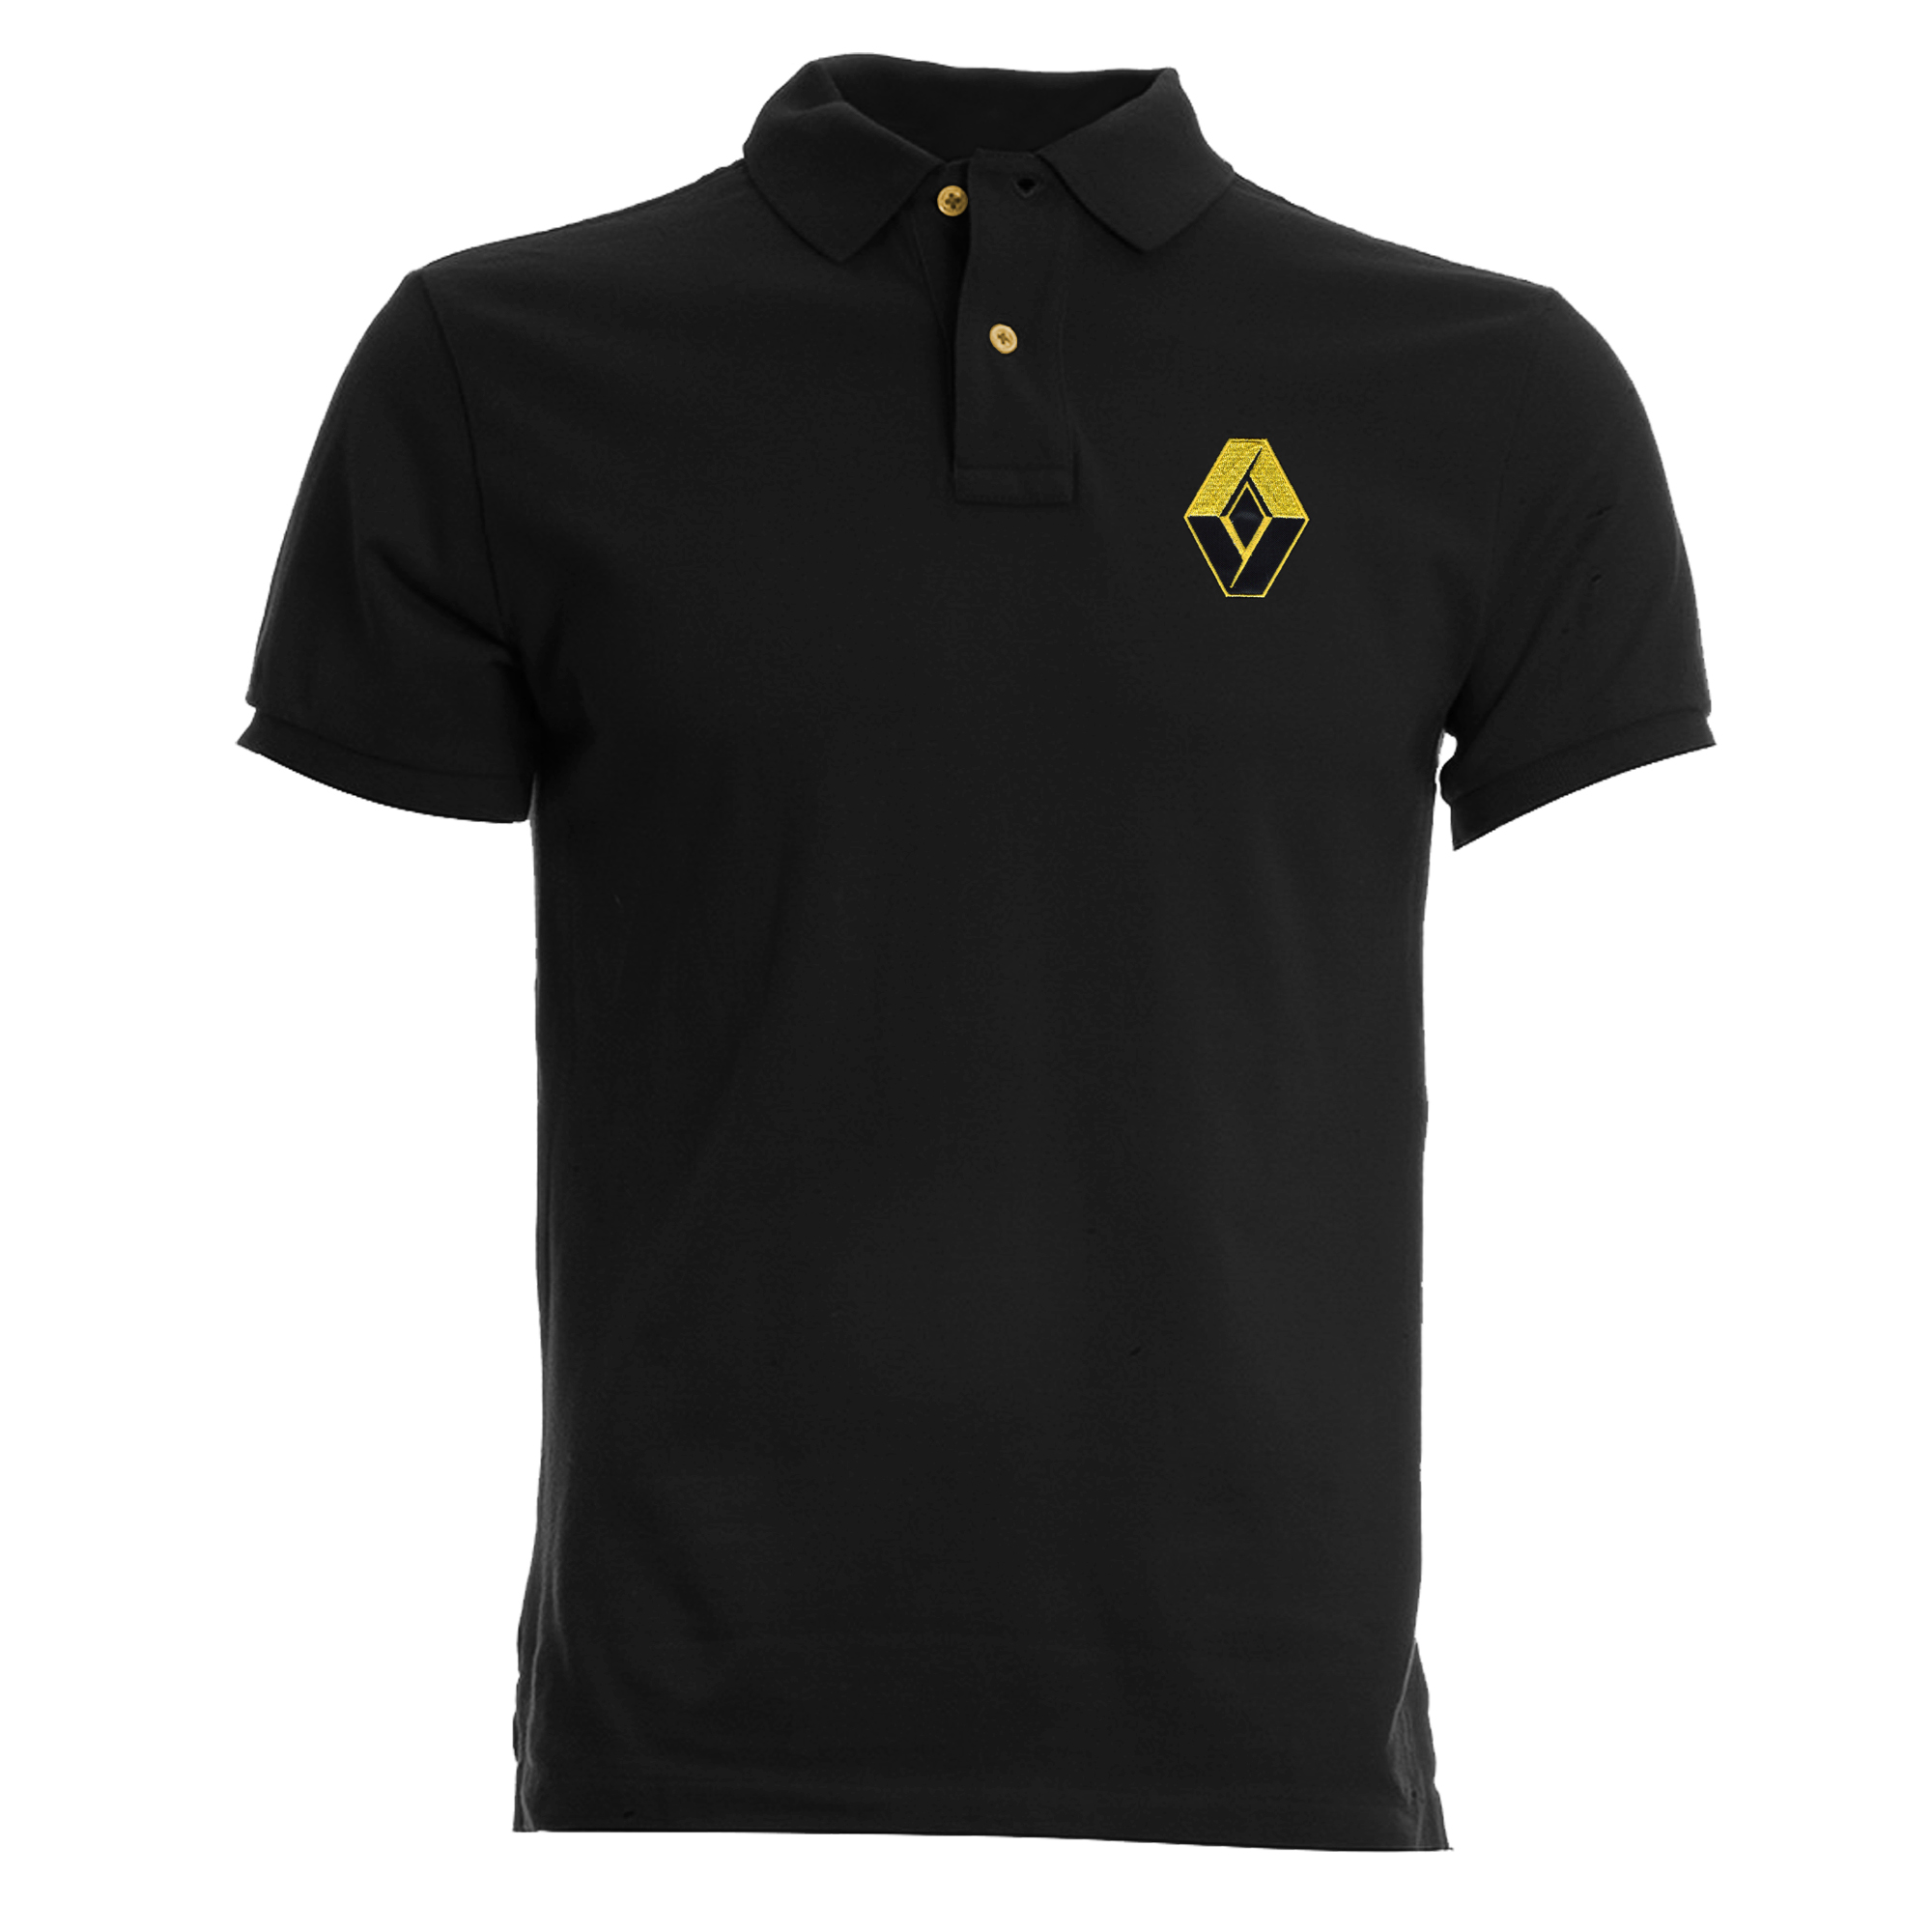 T Patch Toppa Renault Effegi Polo Ricamo Works Shirt QsCxthBrd